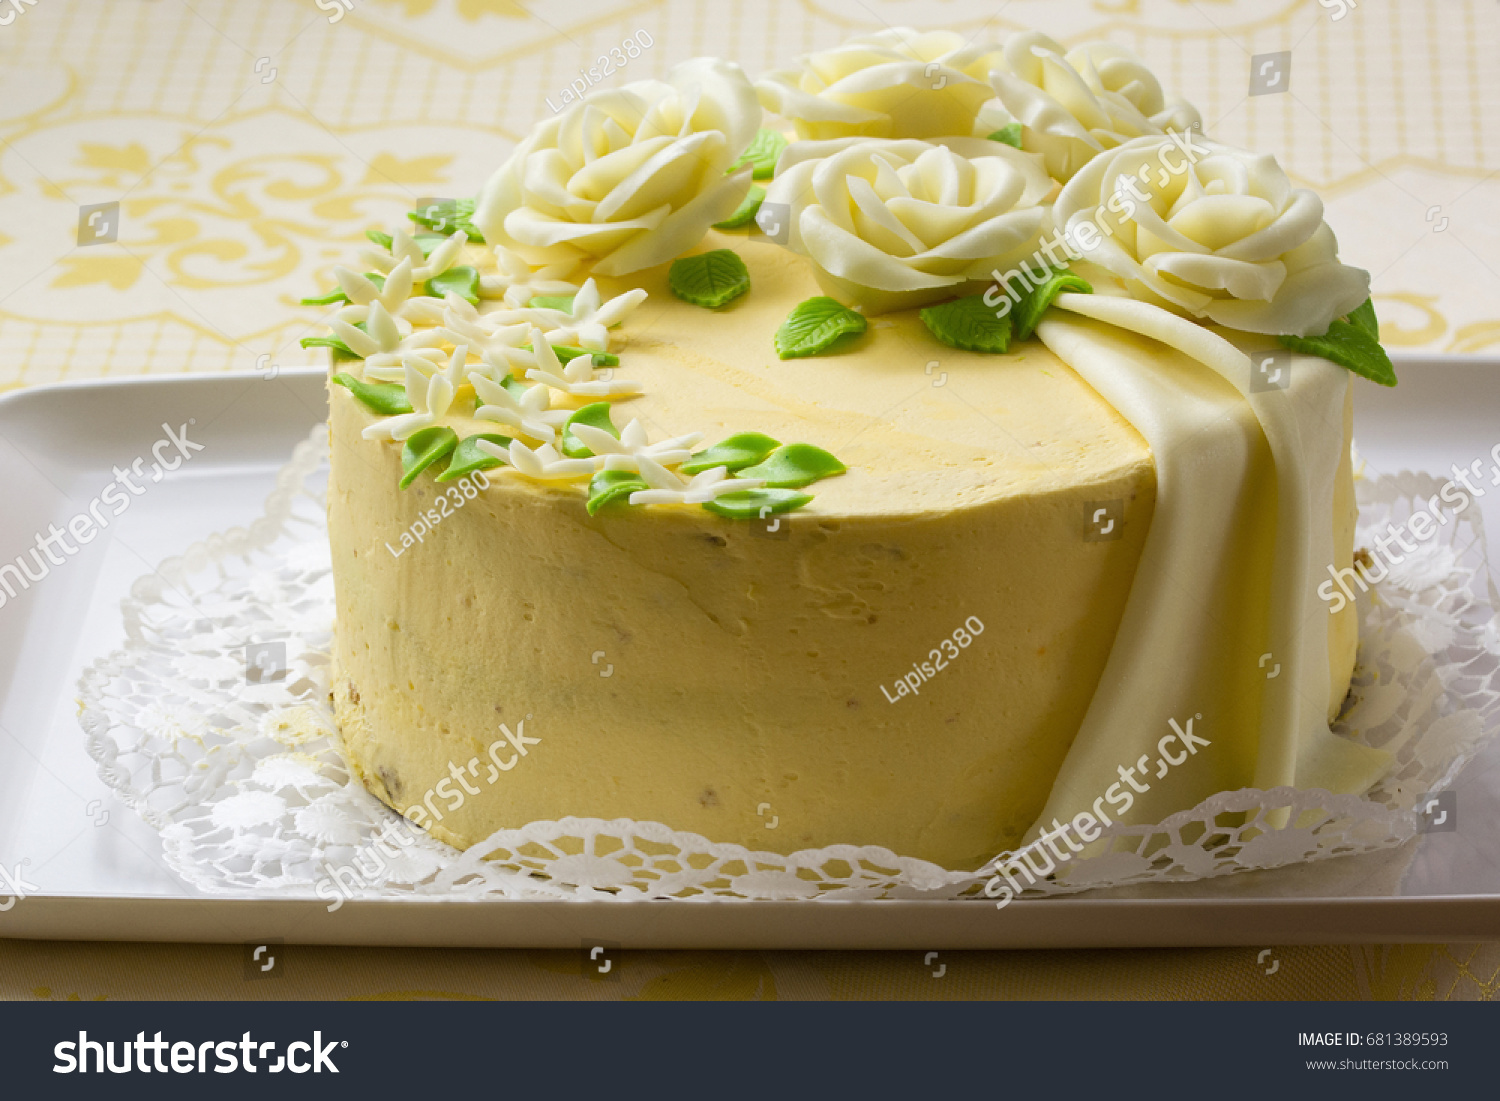 Butter Yellow Cake Marzipan Roses Stock Photo (Edit Now) 681389593 ...